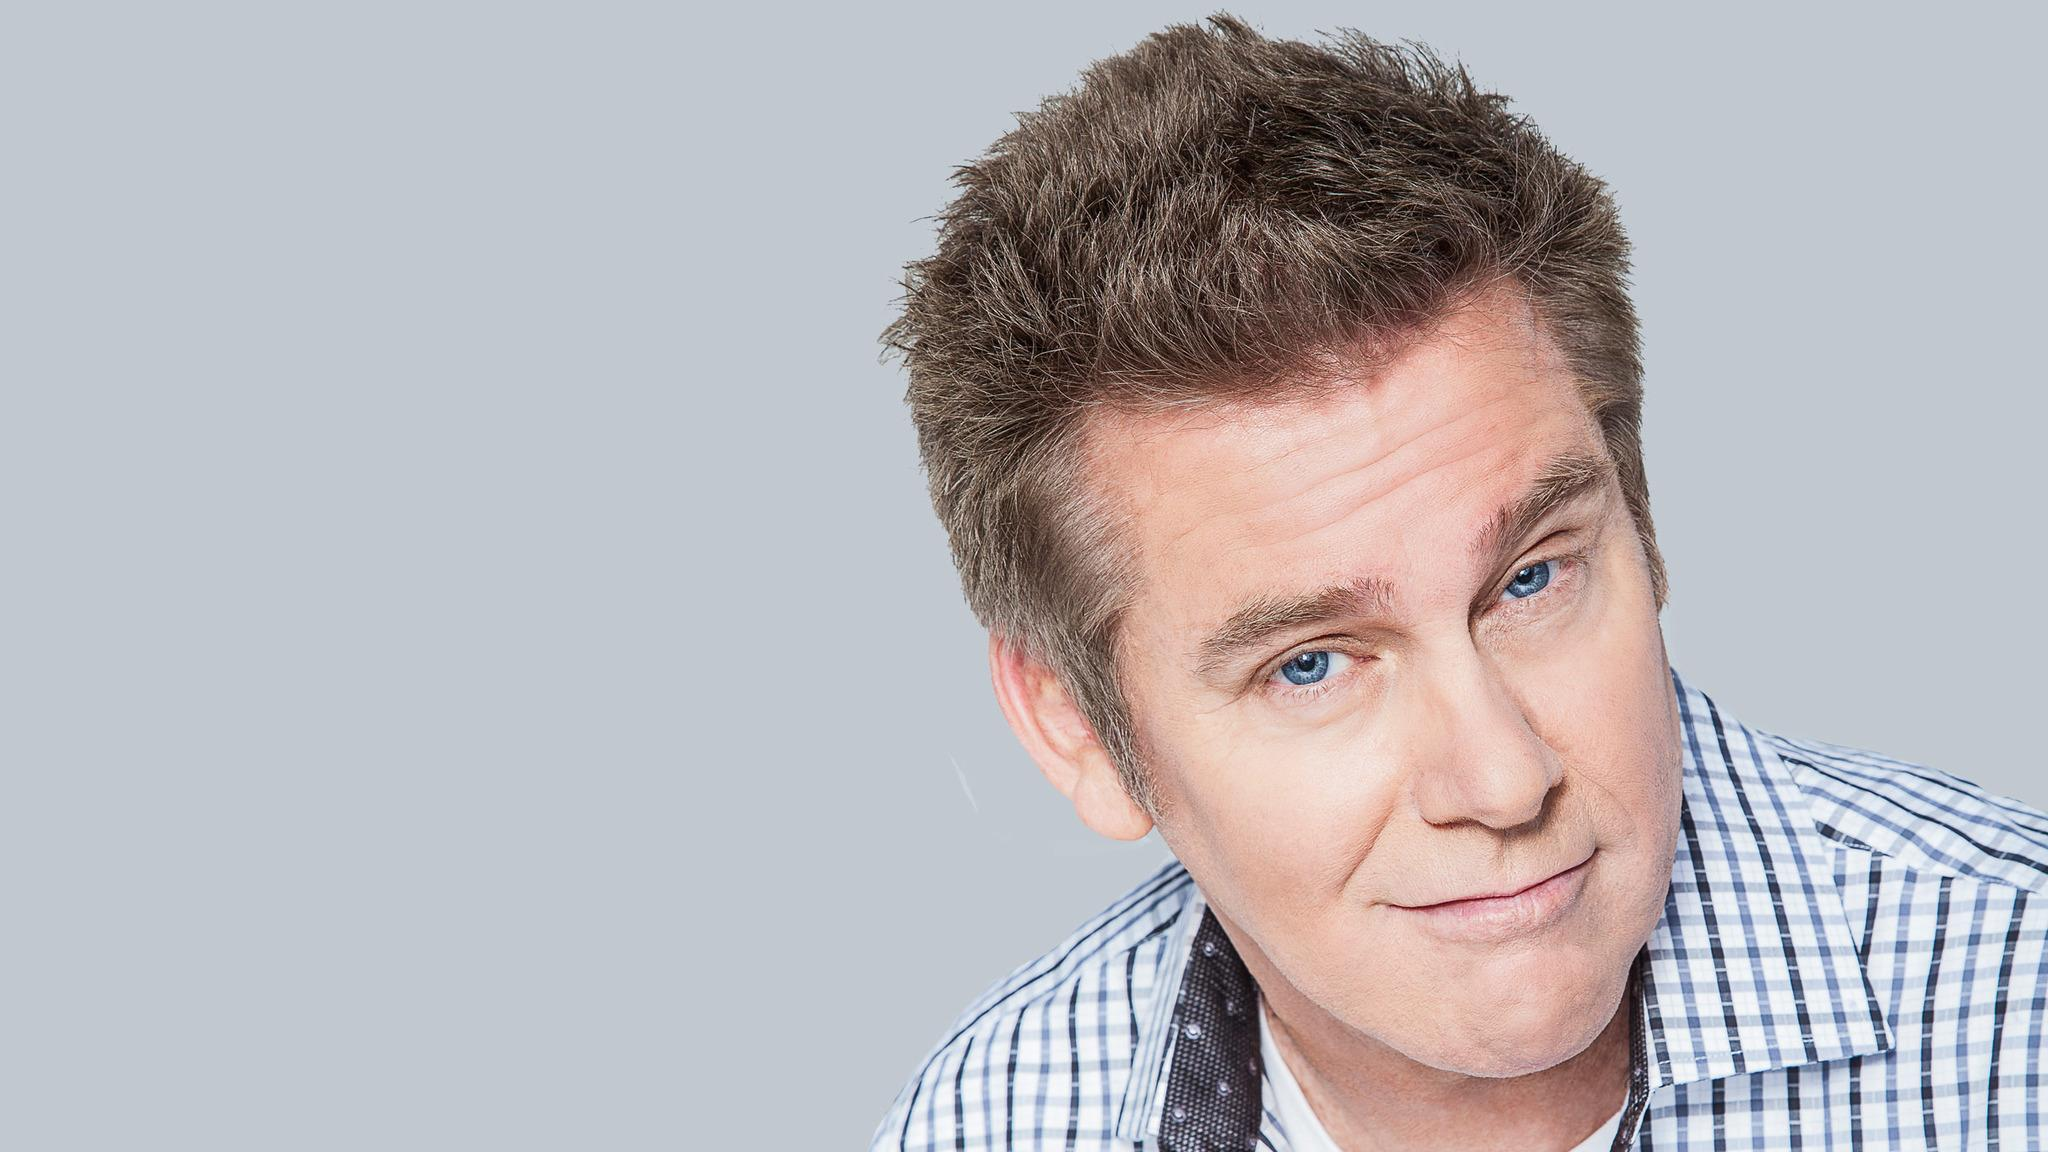 Brian Regan Live at Neal S Blaisdell Concert Hall